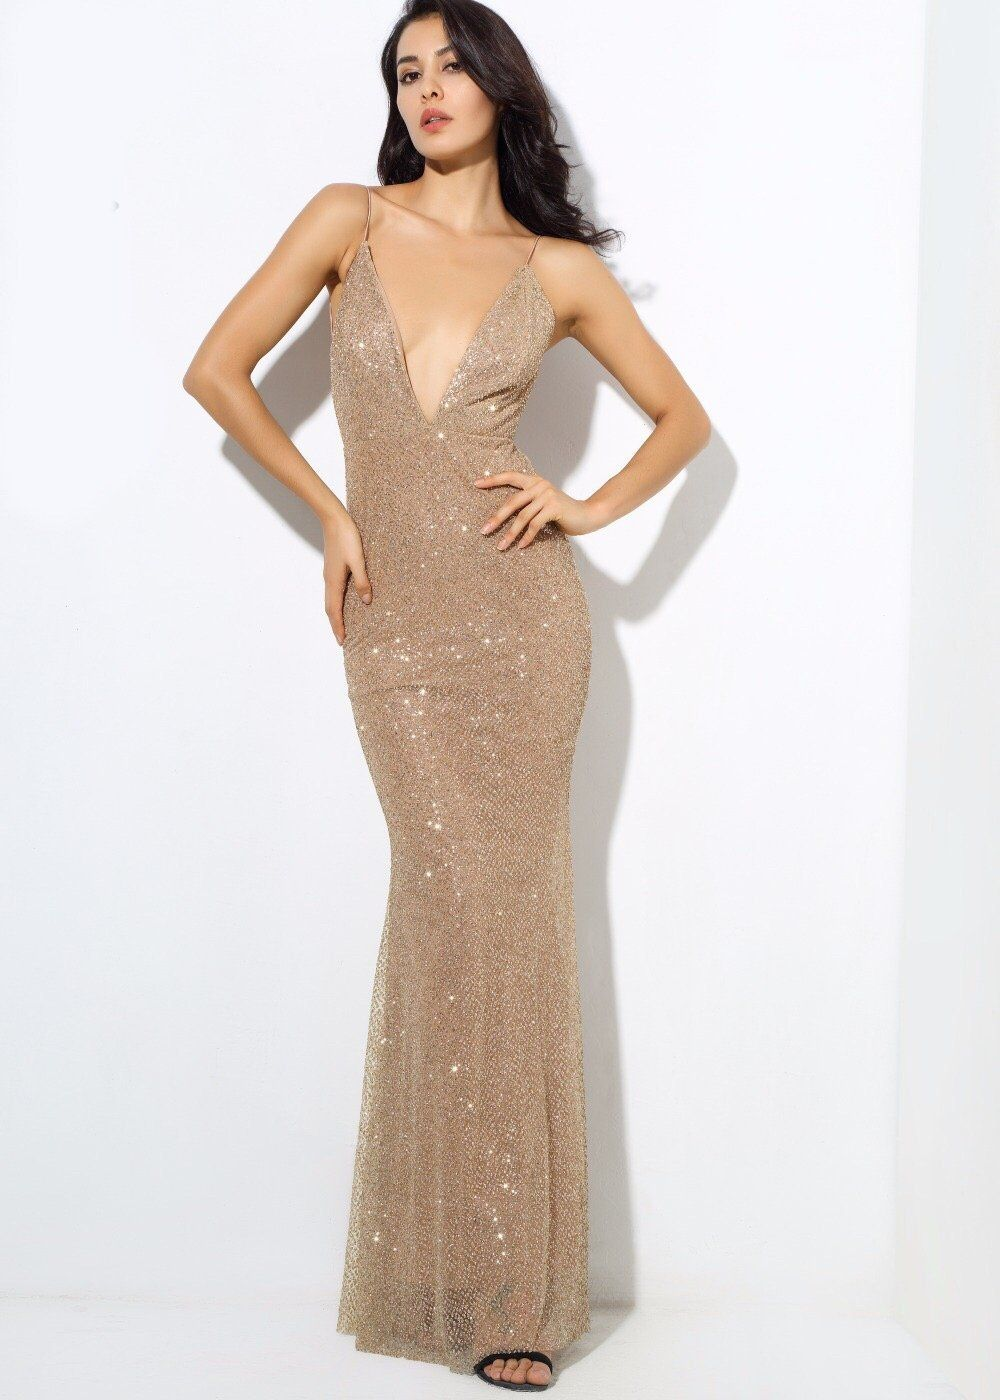 Goal Digger Gold Embellished Sequin Maxi Party Gown Dress Sparkly Dress Party Gown Dress Evening Dresses [ 1400 x 1000 Pixel ]